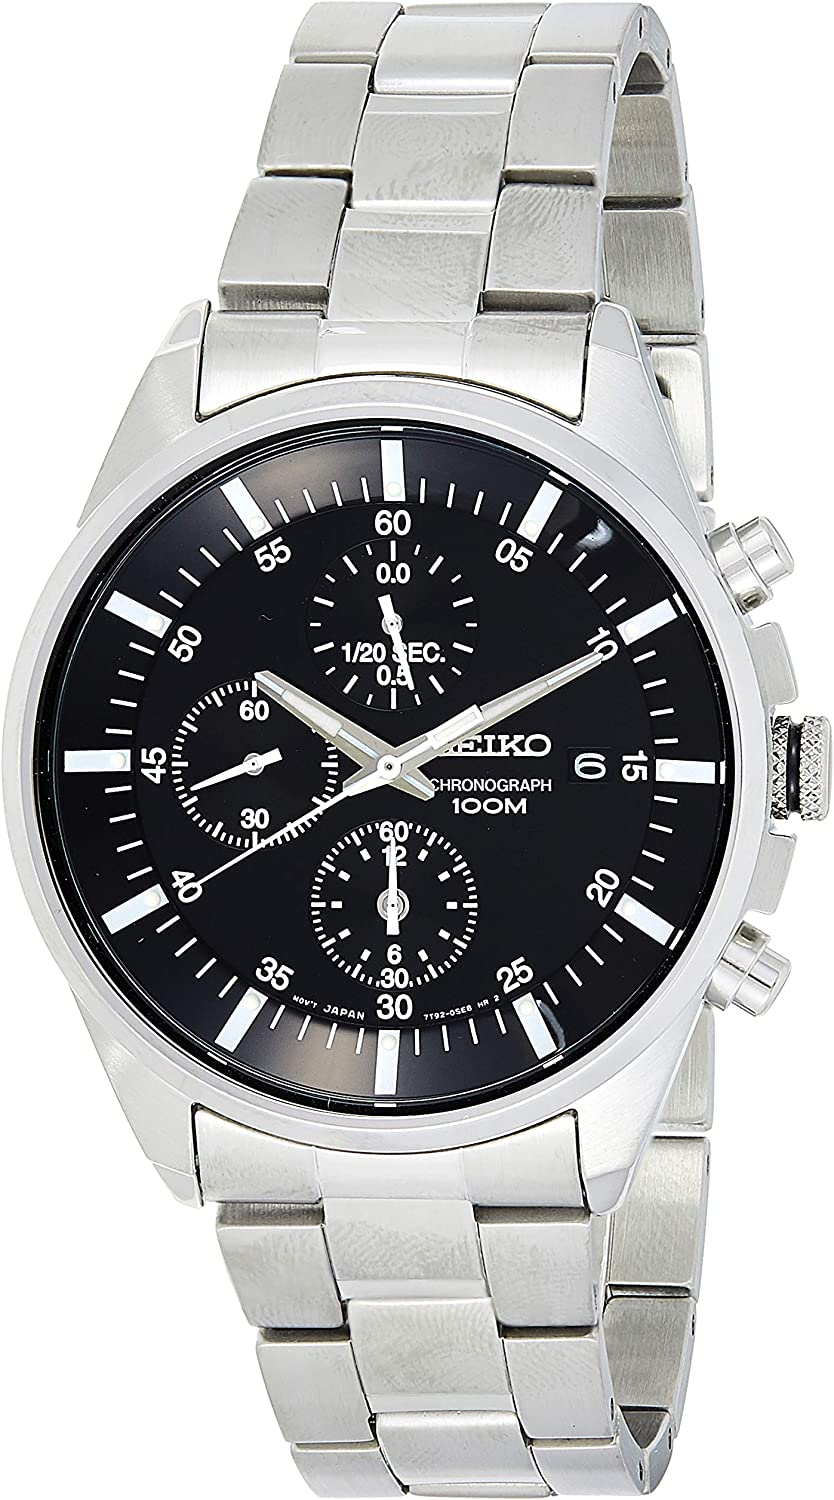 Seiko Men s SNDC81 Stainless Steel Analog with Black Dial Watch